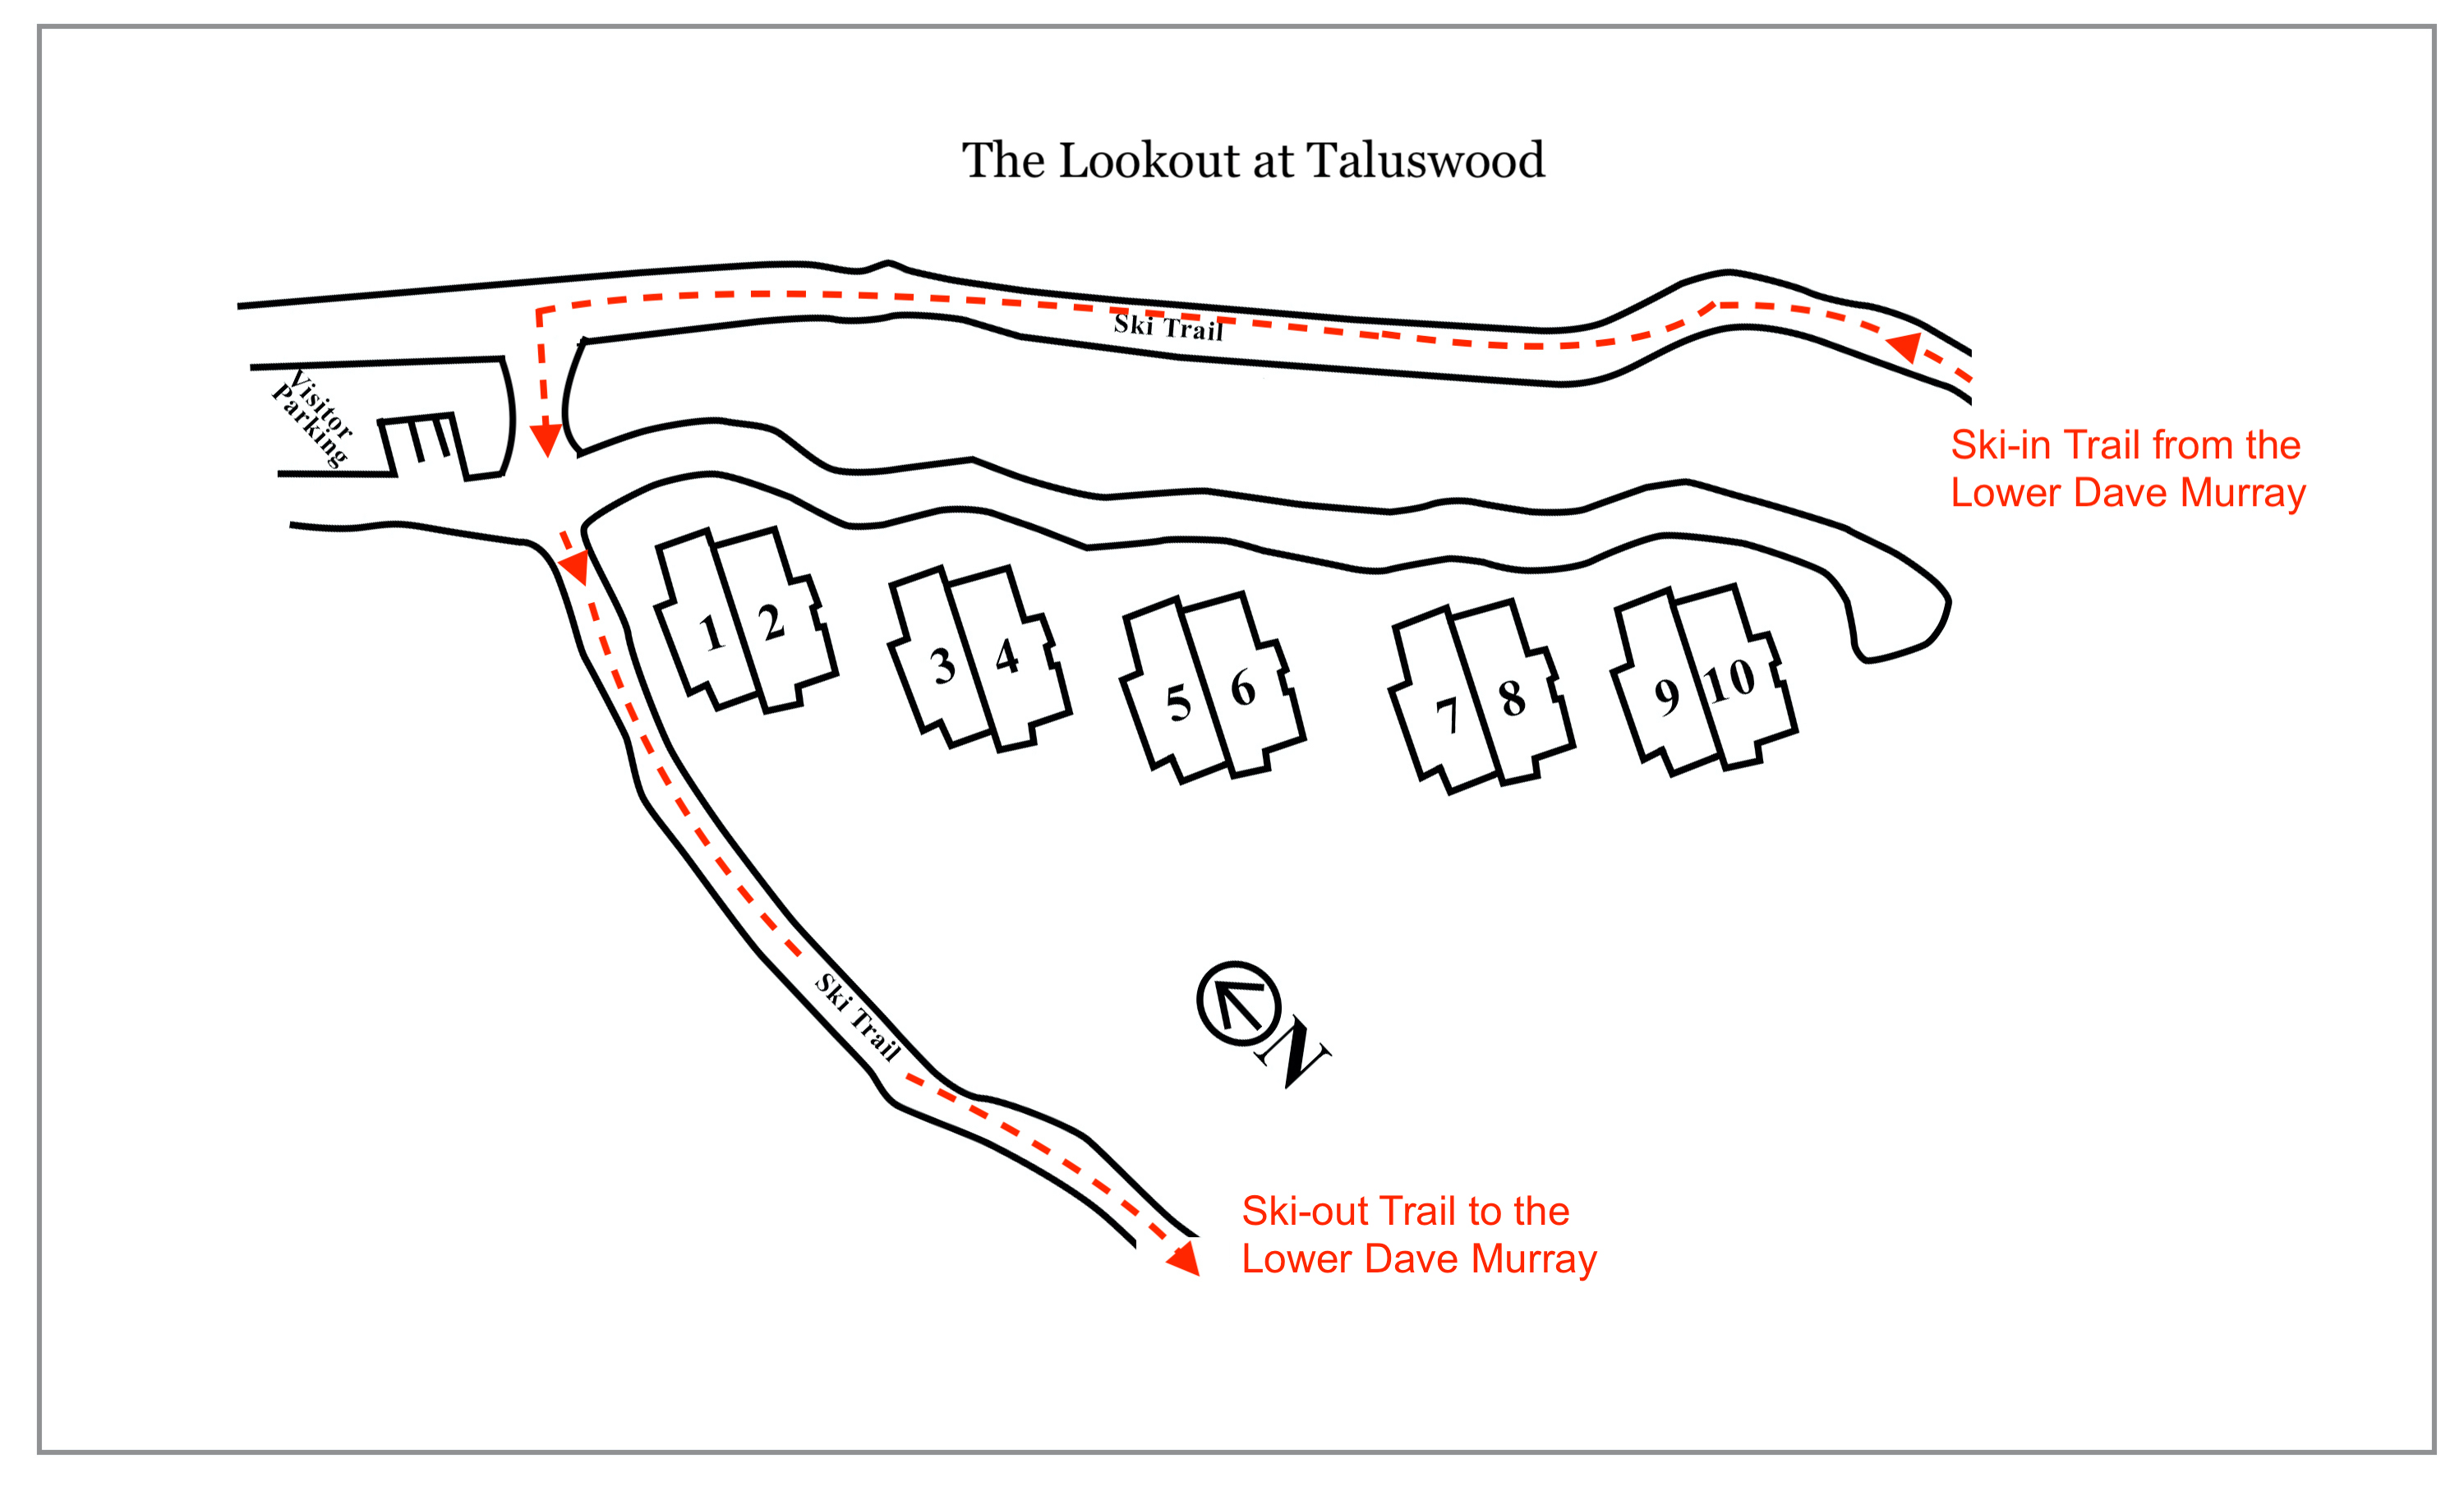 Lookout Taluswood ski in ski out trails